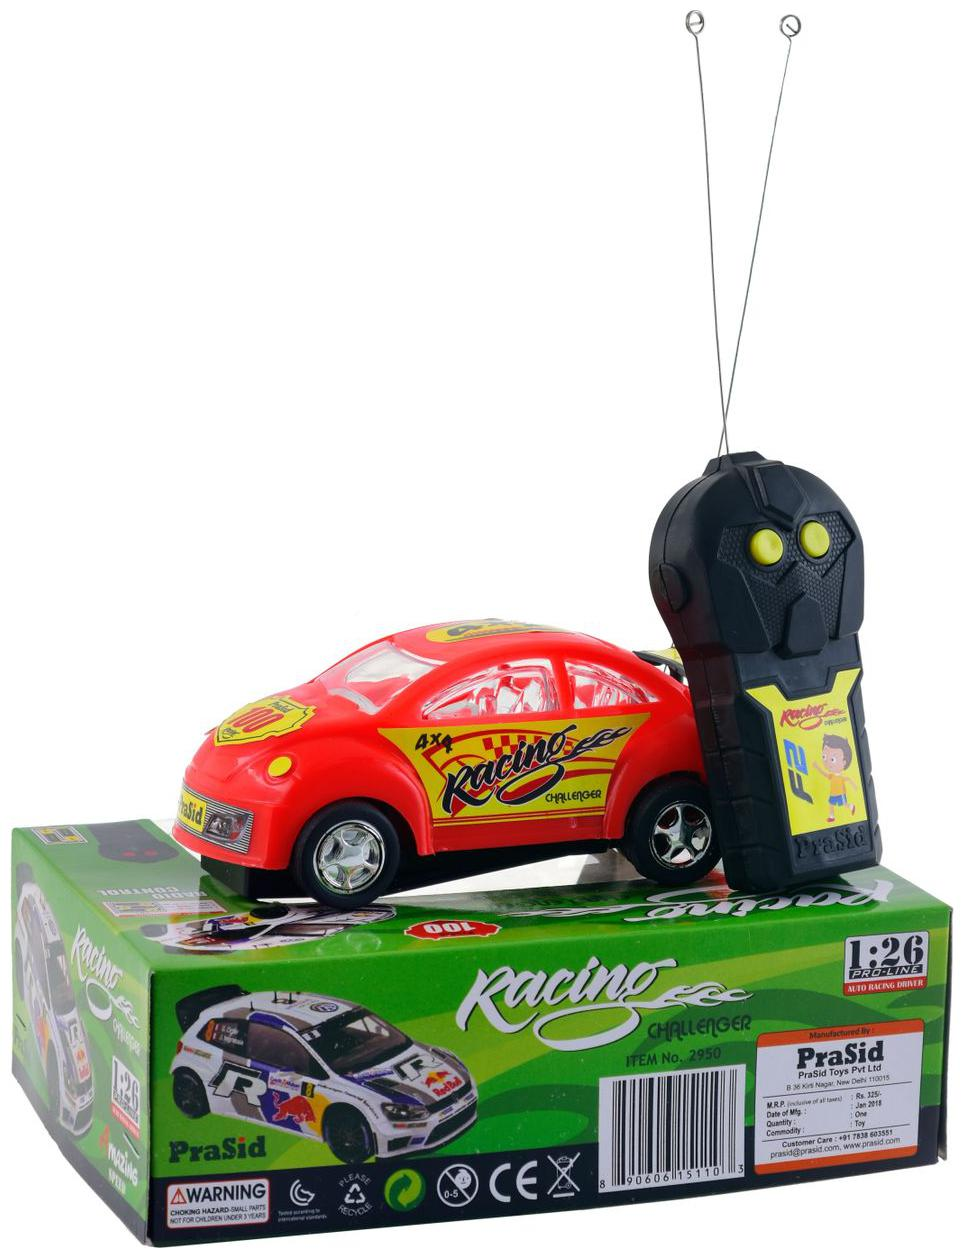 Rc Cars Toys Buy Remote Control Cars Buses For Kids Online At Best Price